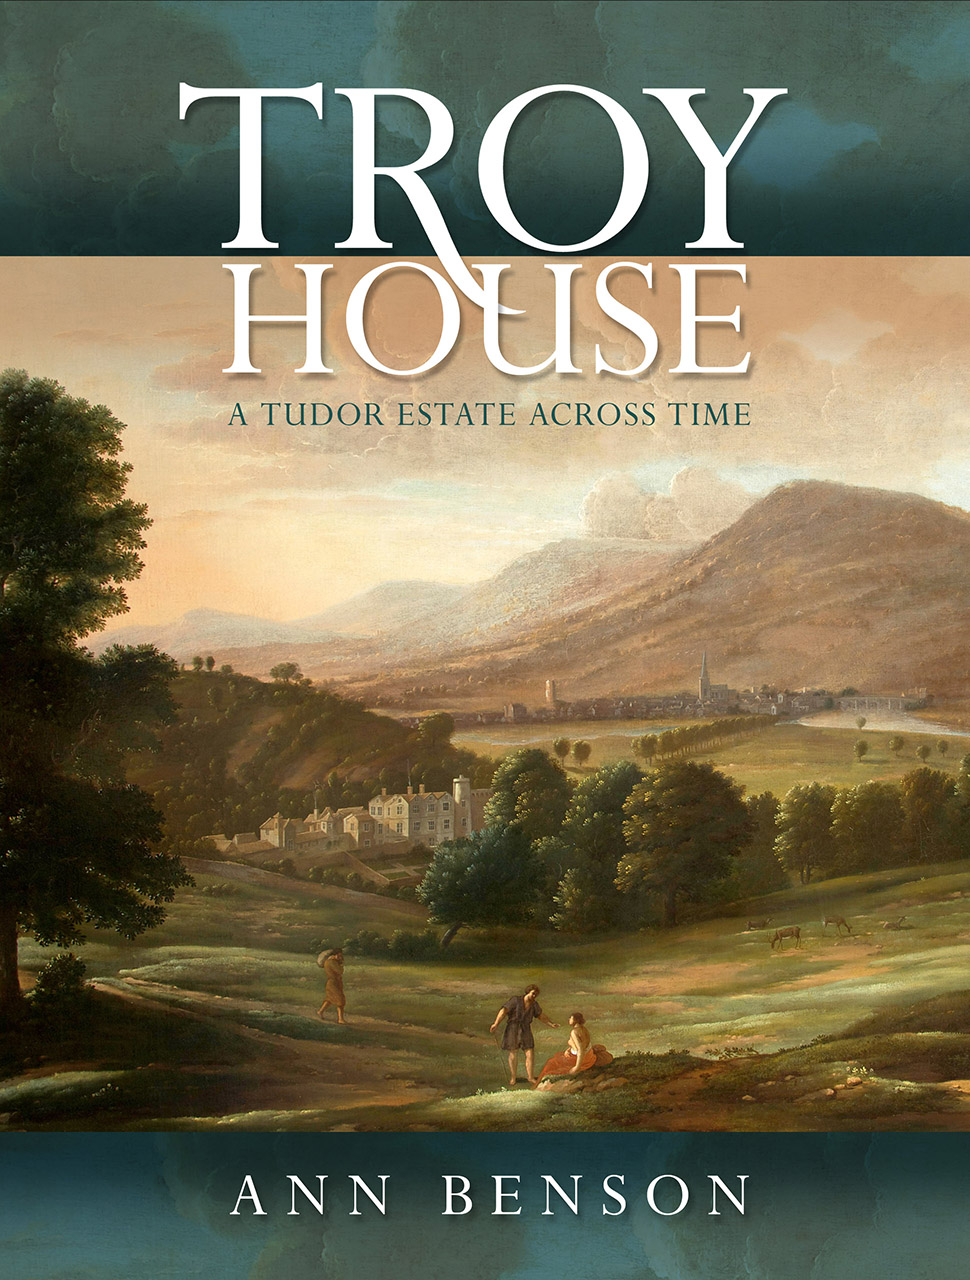 Troy House: A Tudor Estate Across Time